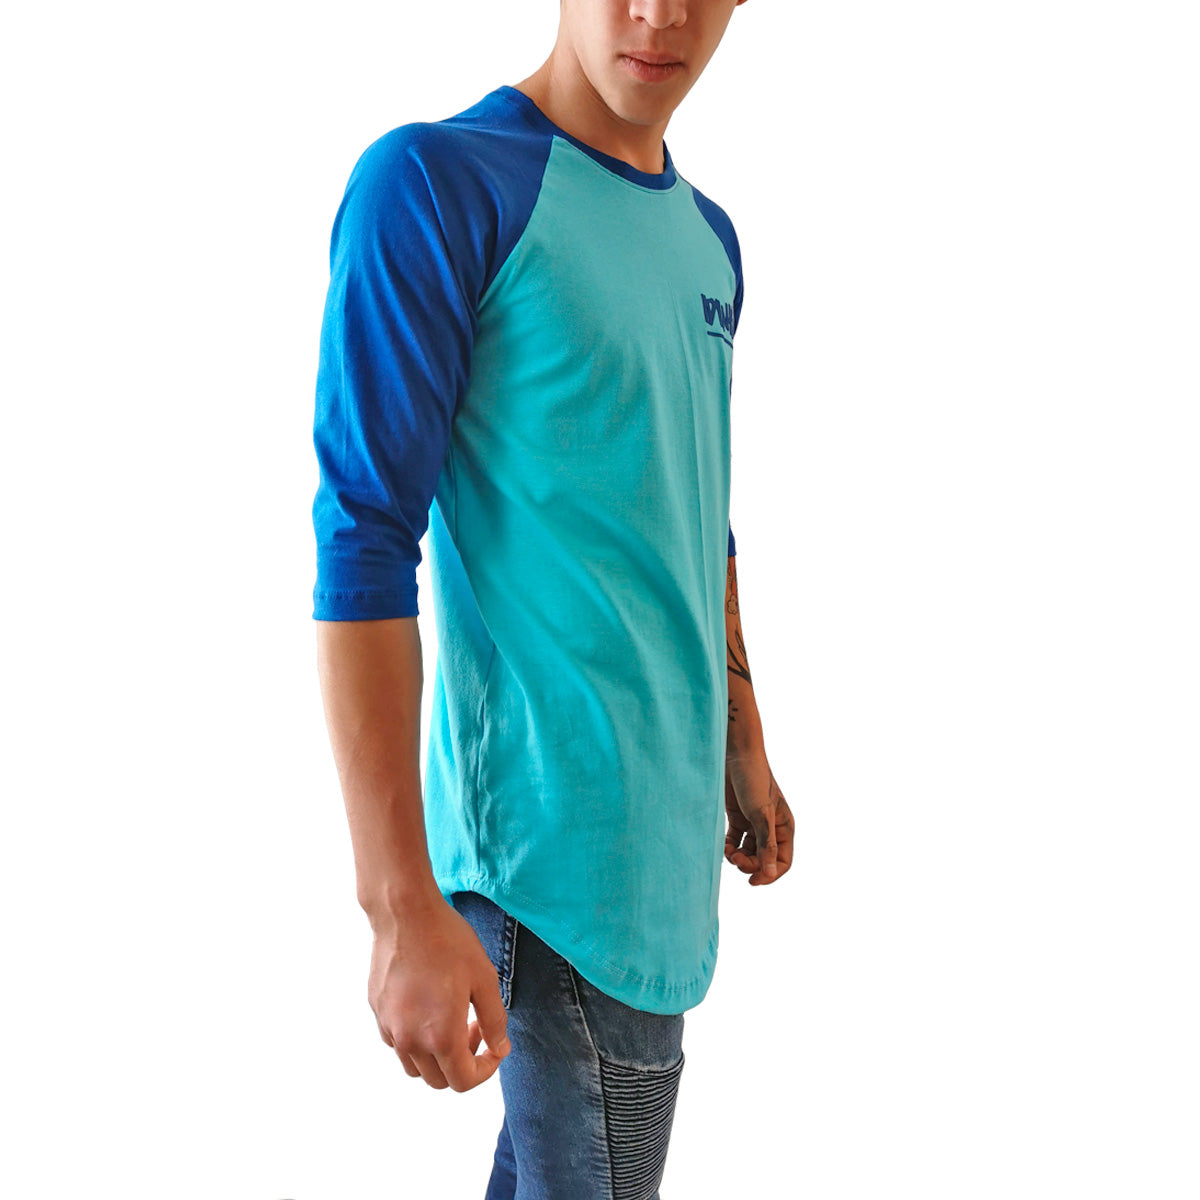 Playera Béisbolera Long Fit Swag Curva IDINK Azul